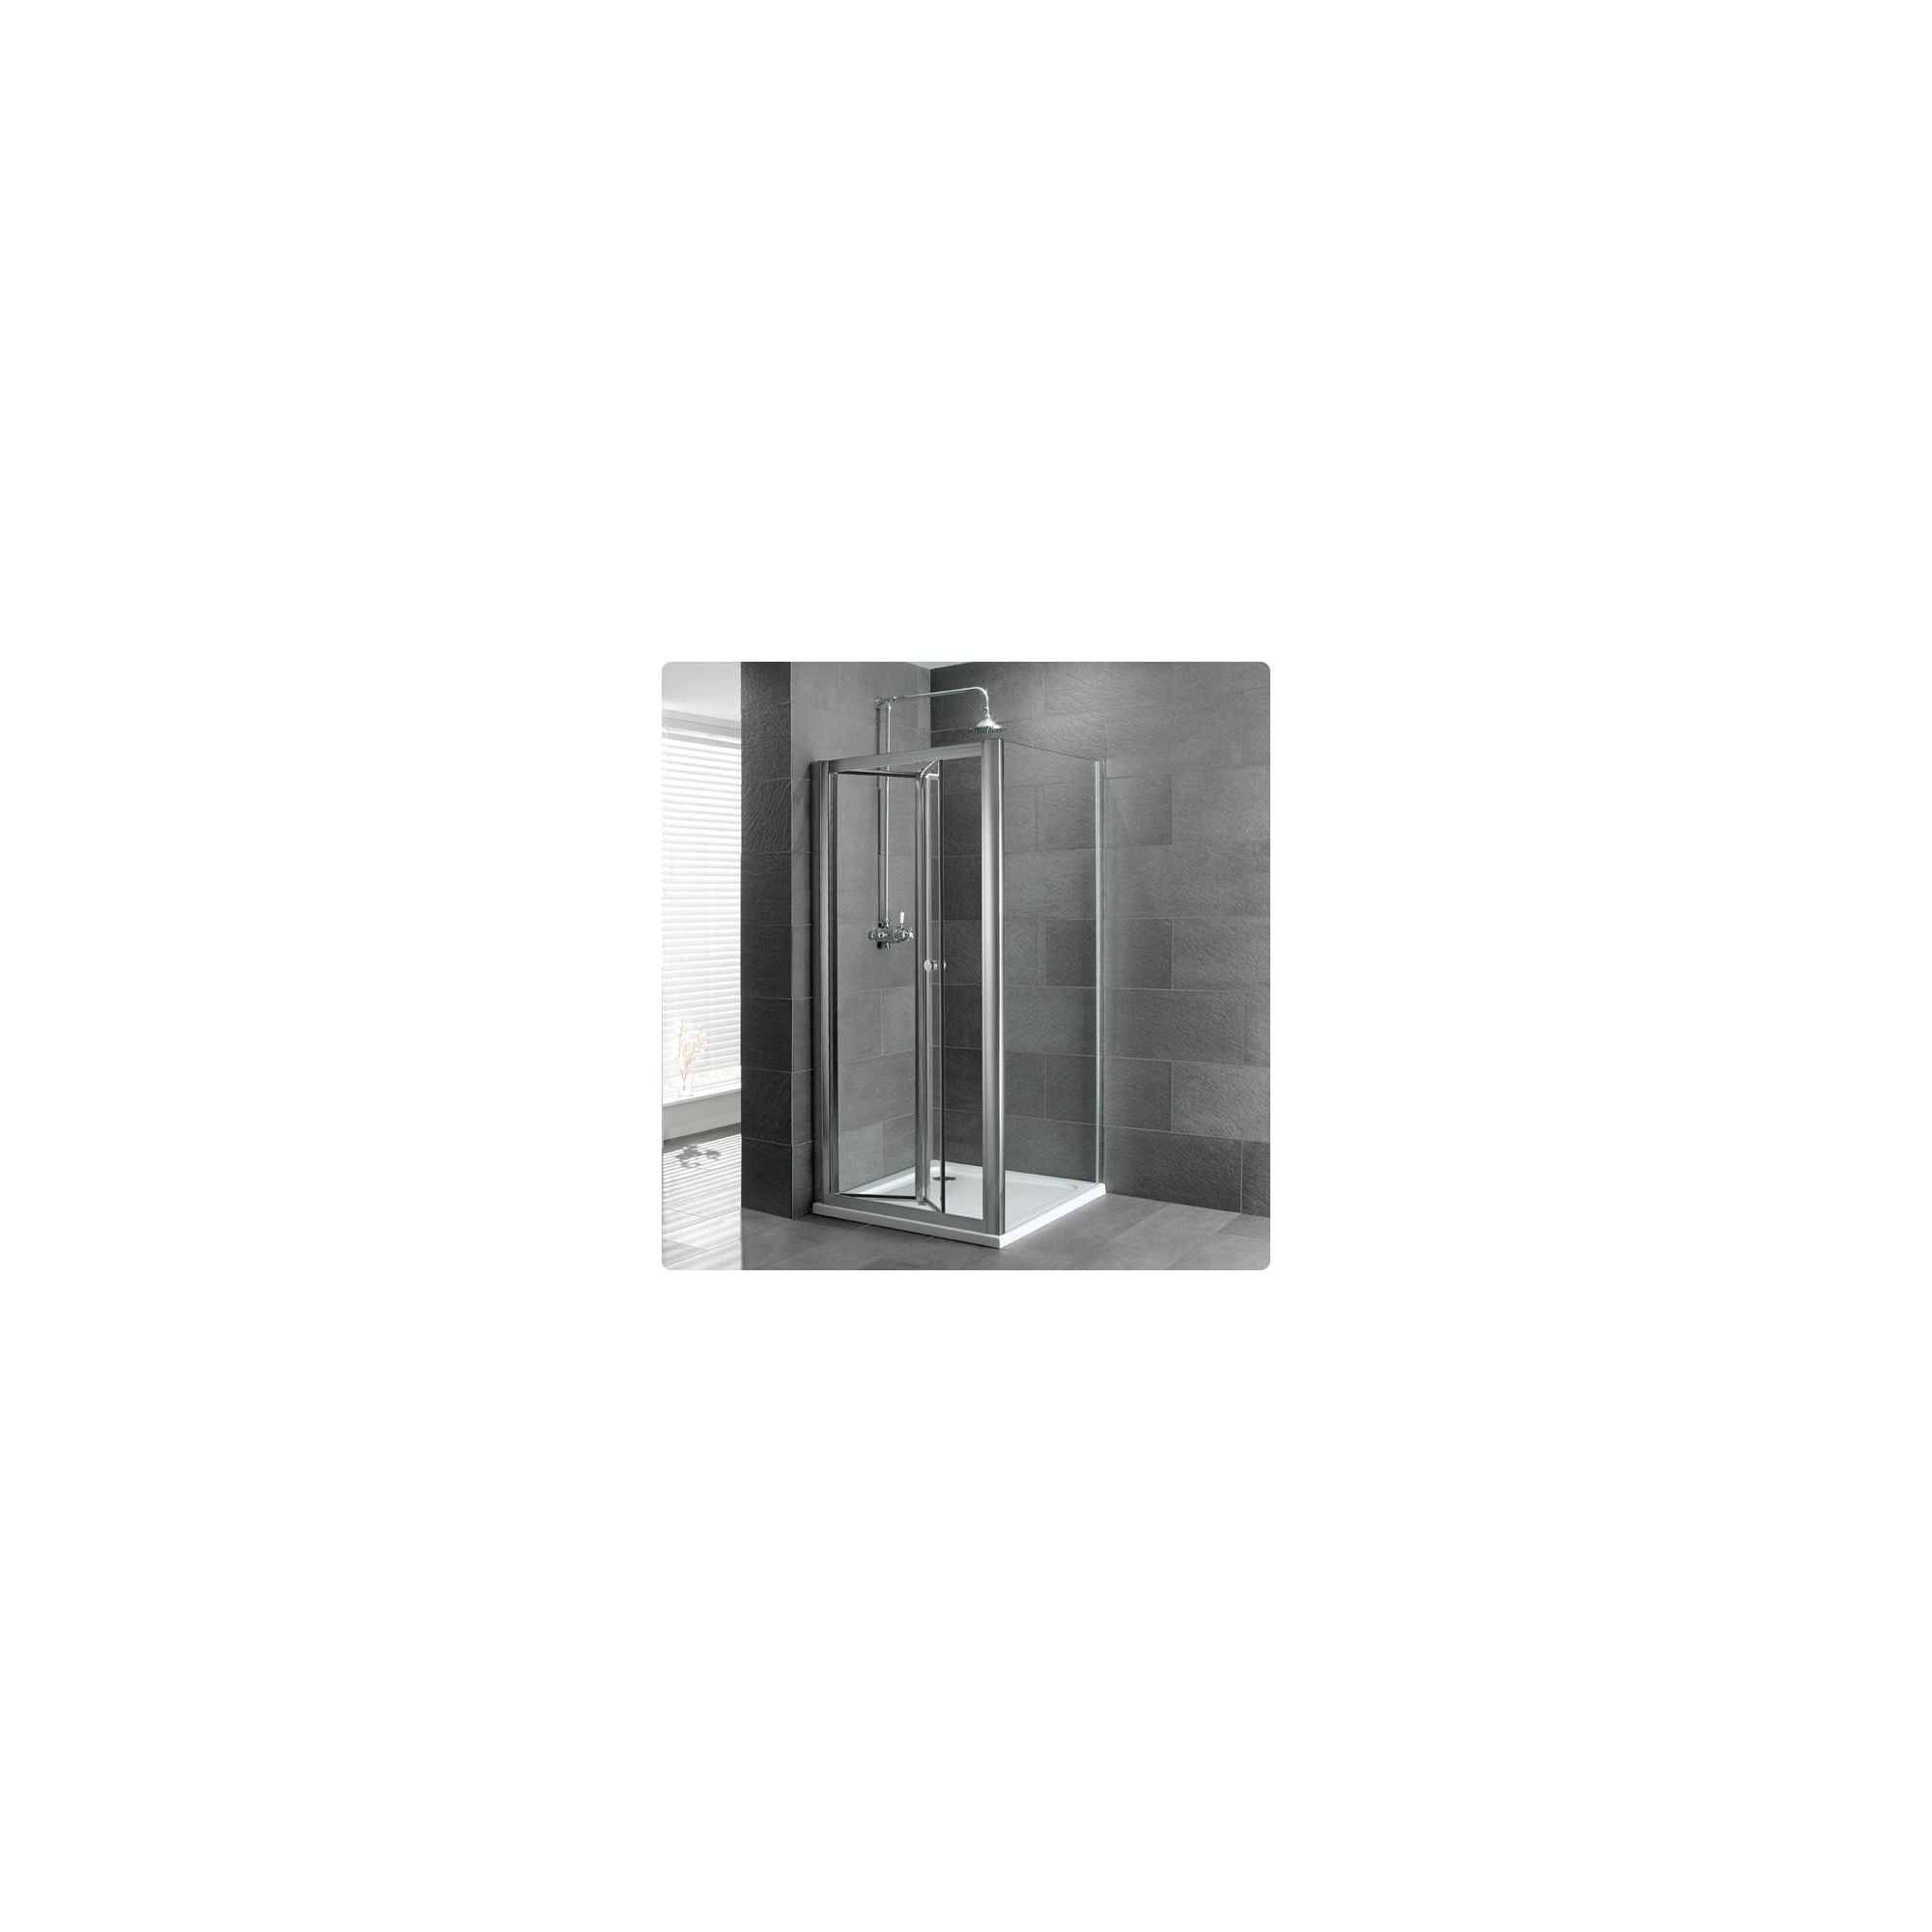 Duchy Select Silver Bi-Fold Door Shower Enclosure, 1000mm x 900mm, Standard Tray, 6mm Glass at Tesco Direct